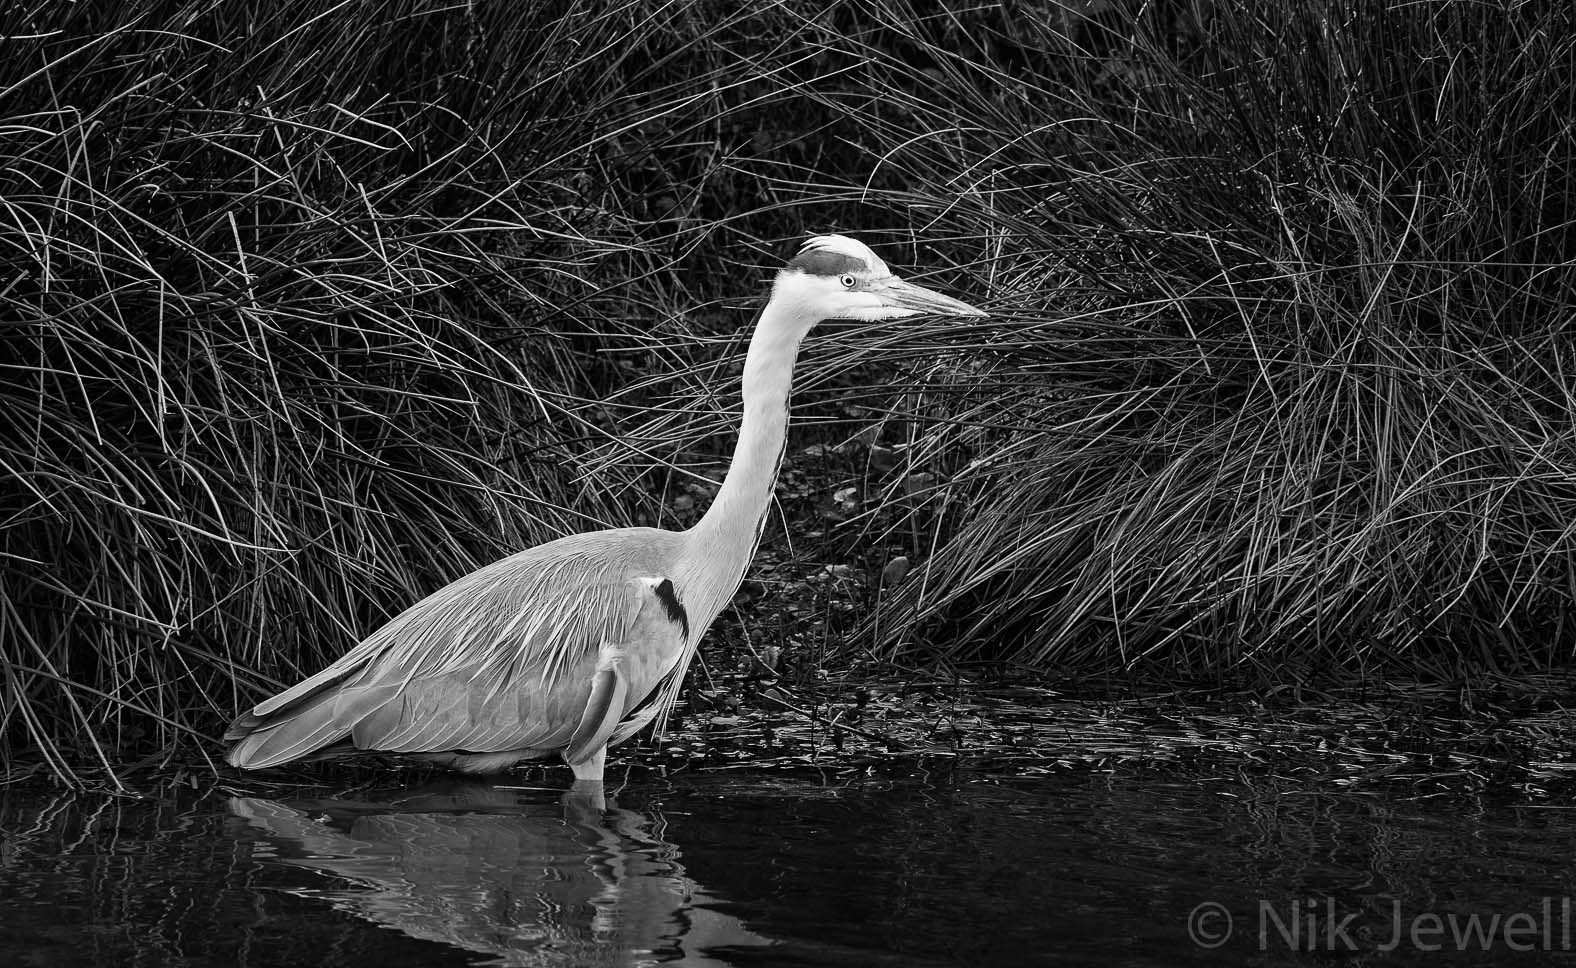 After-Heron, Bude Canal